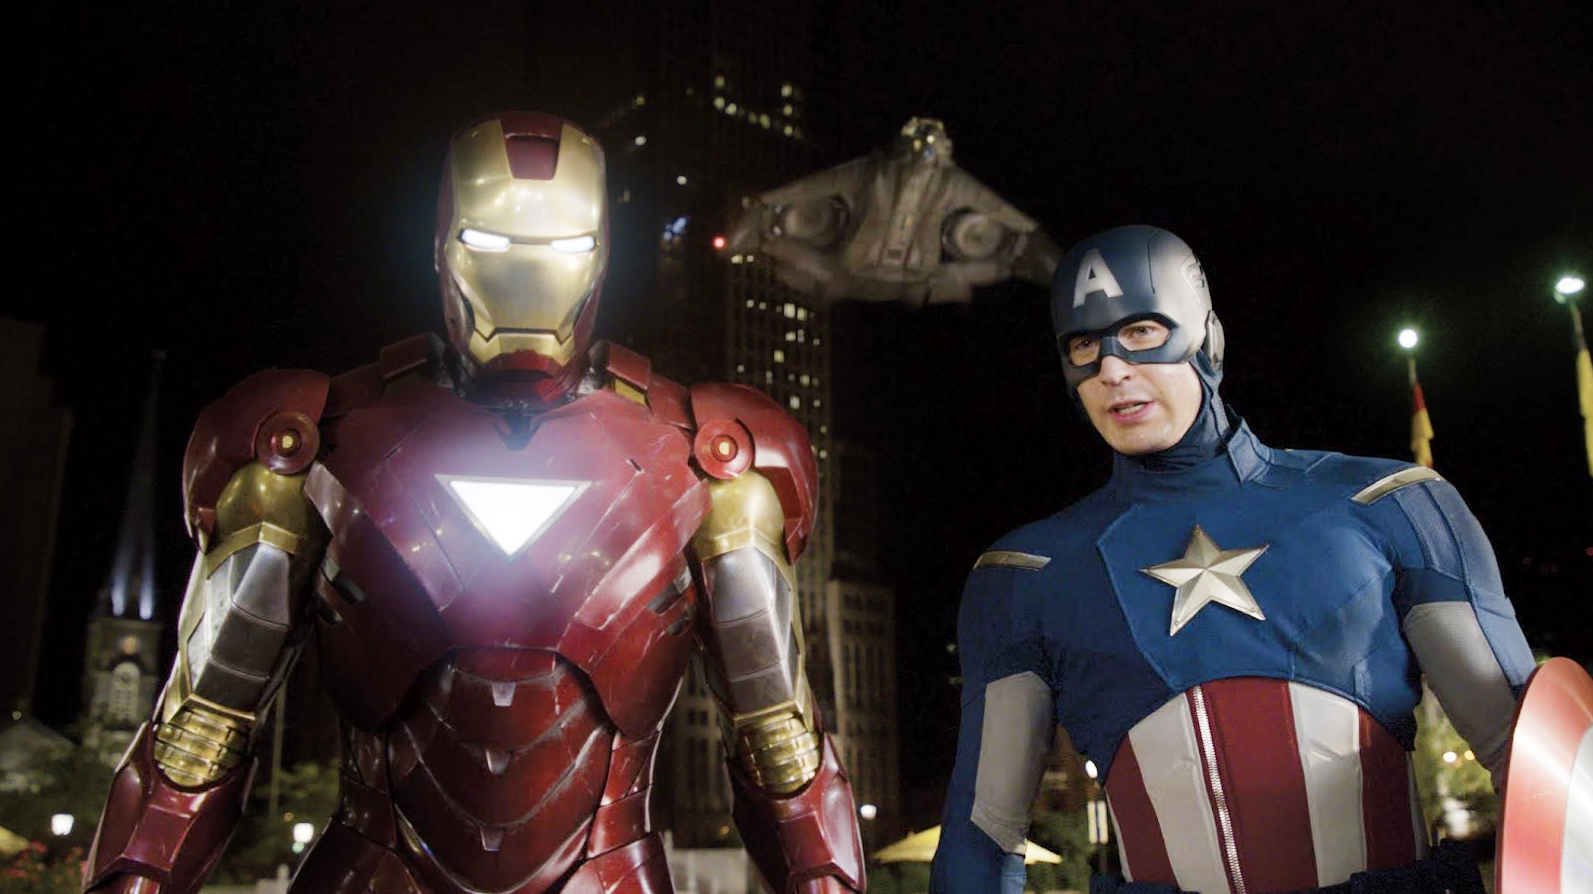 Captain America and Iron Man stand side-by-side after battling Loki in Avengers.